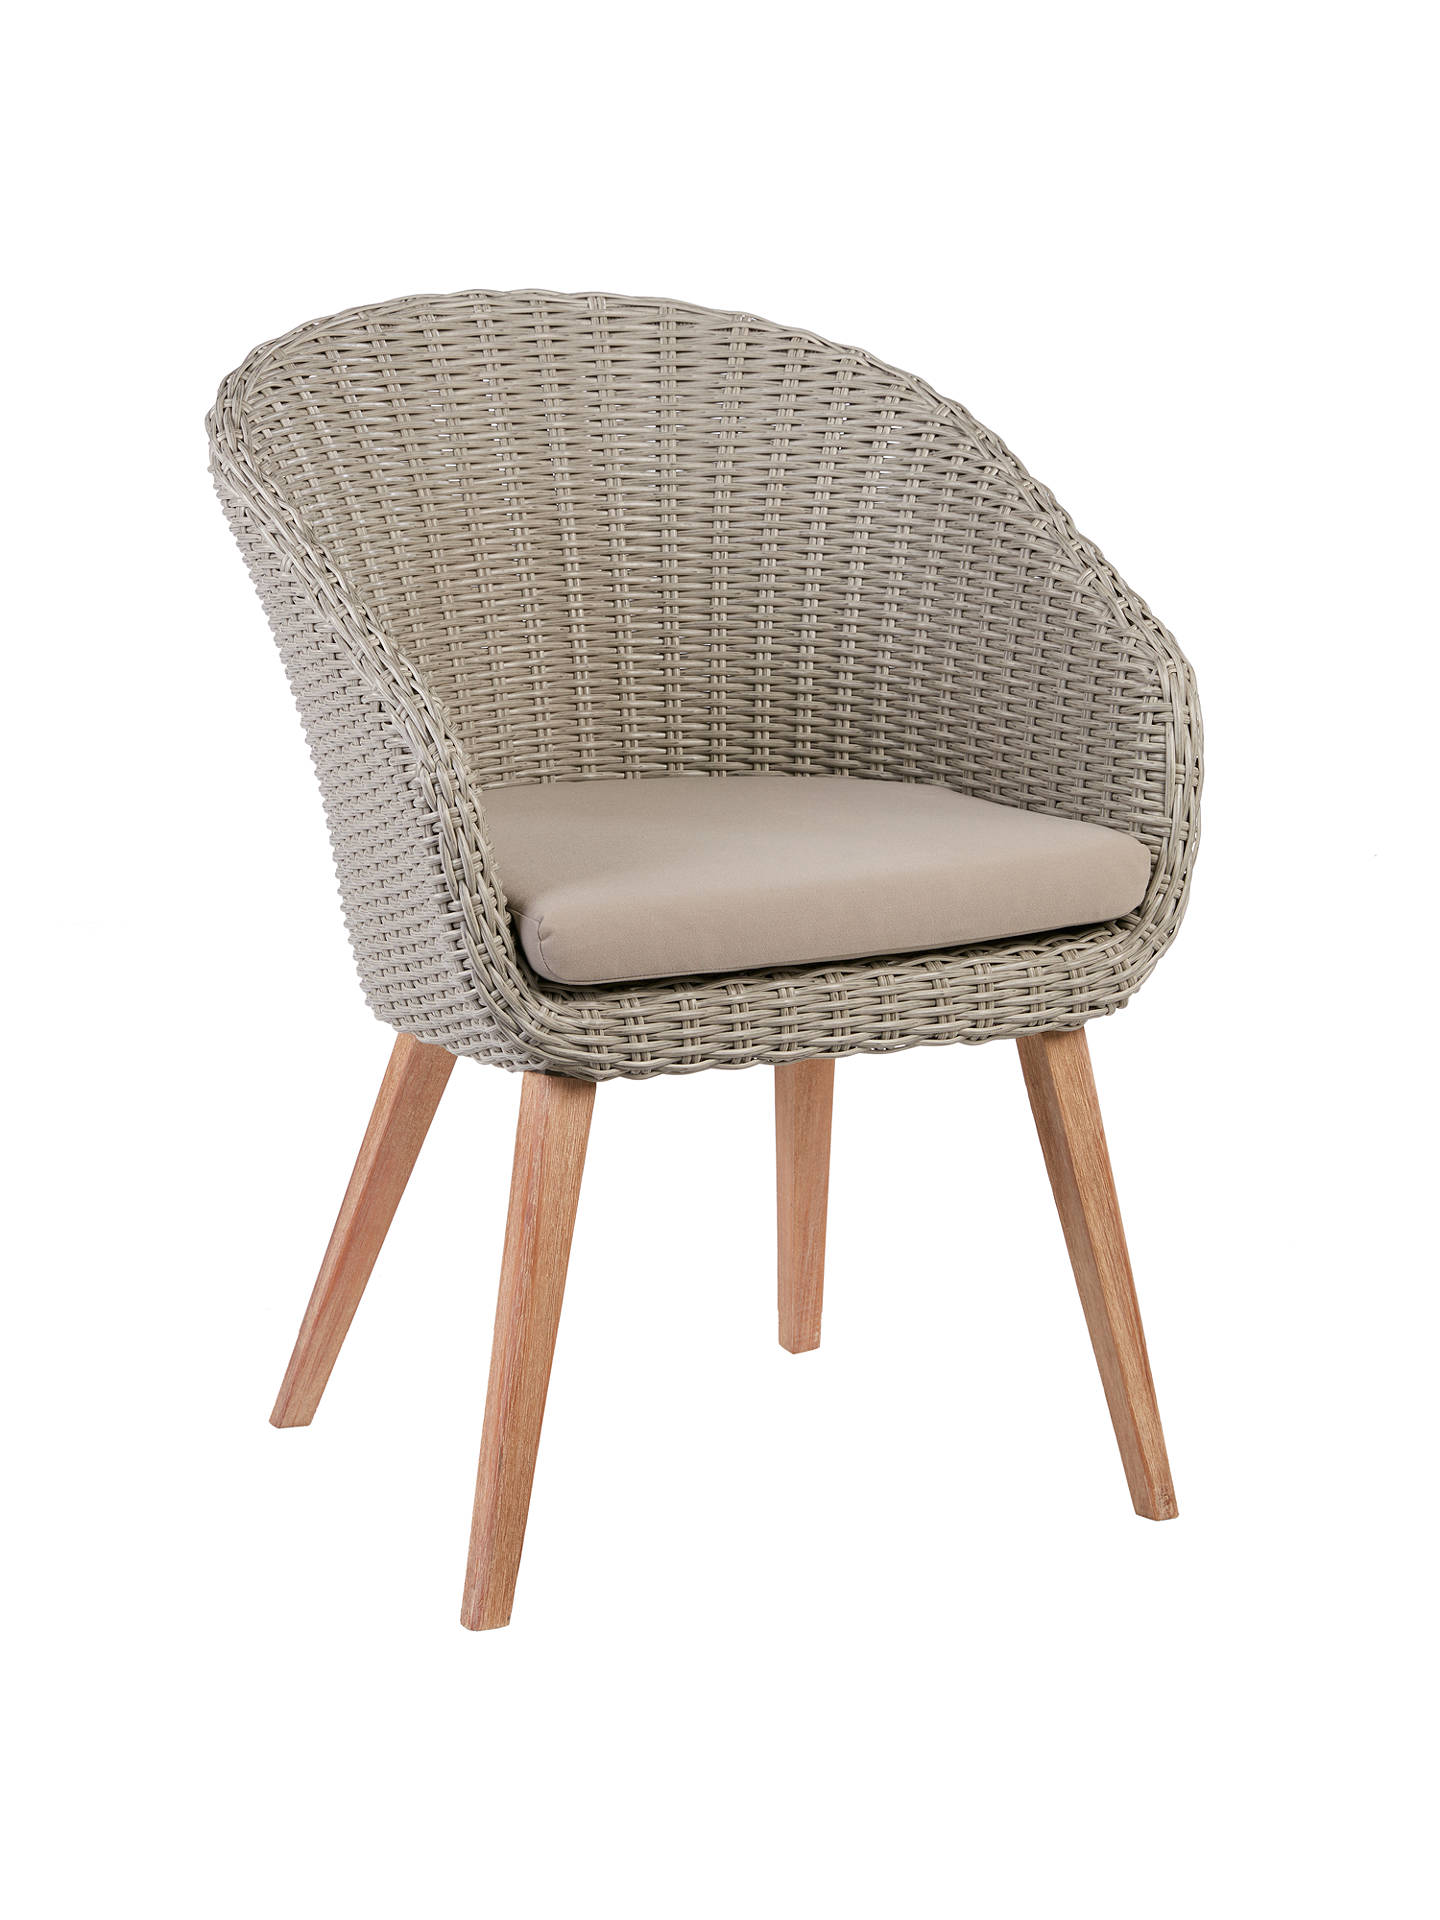 Lot 30569 - V Brand New To John Lewis Sol Four Seater Round Garden Table & Chairs ISP £999 (John Lewis) Stock